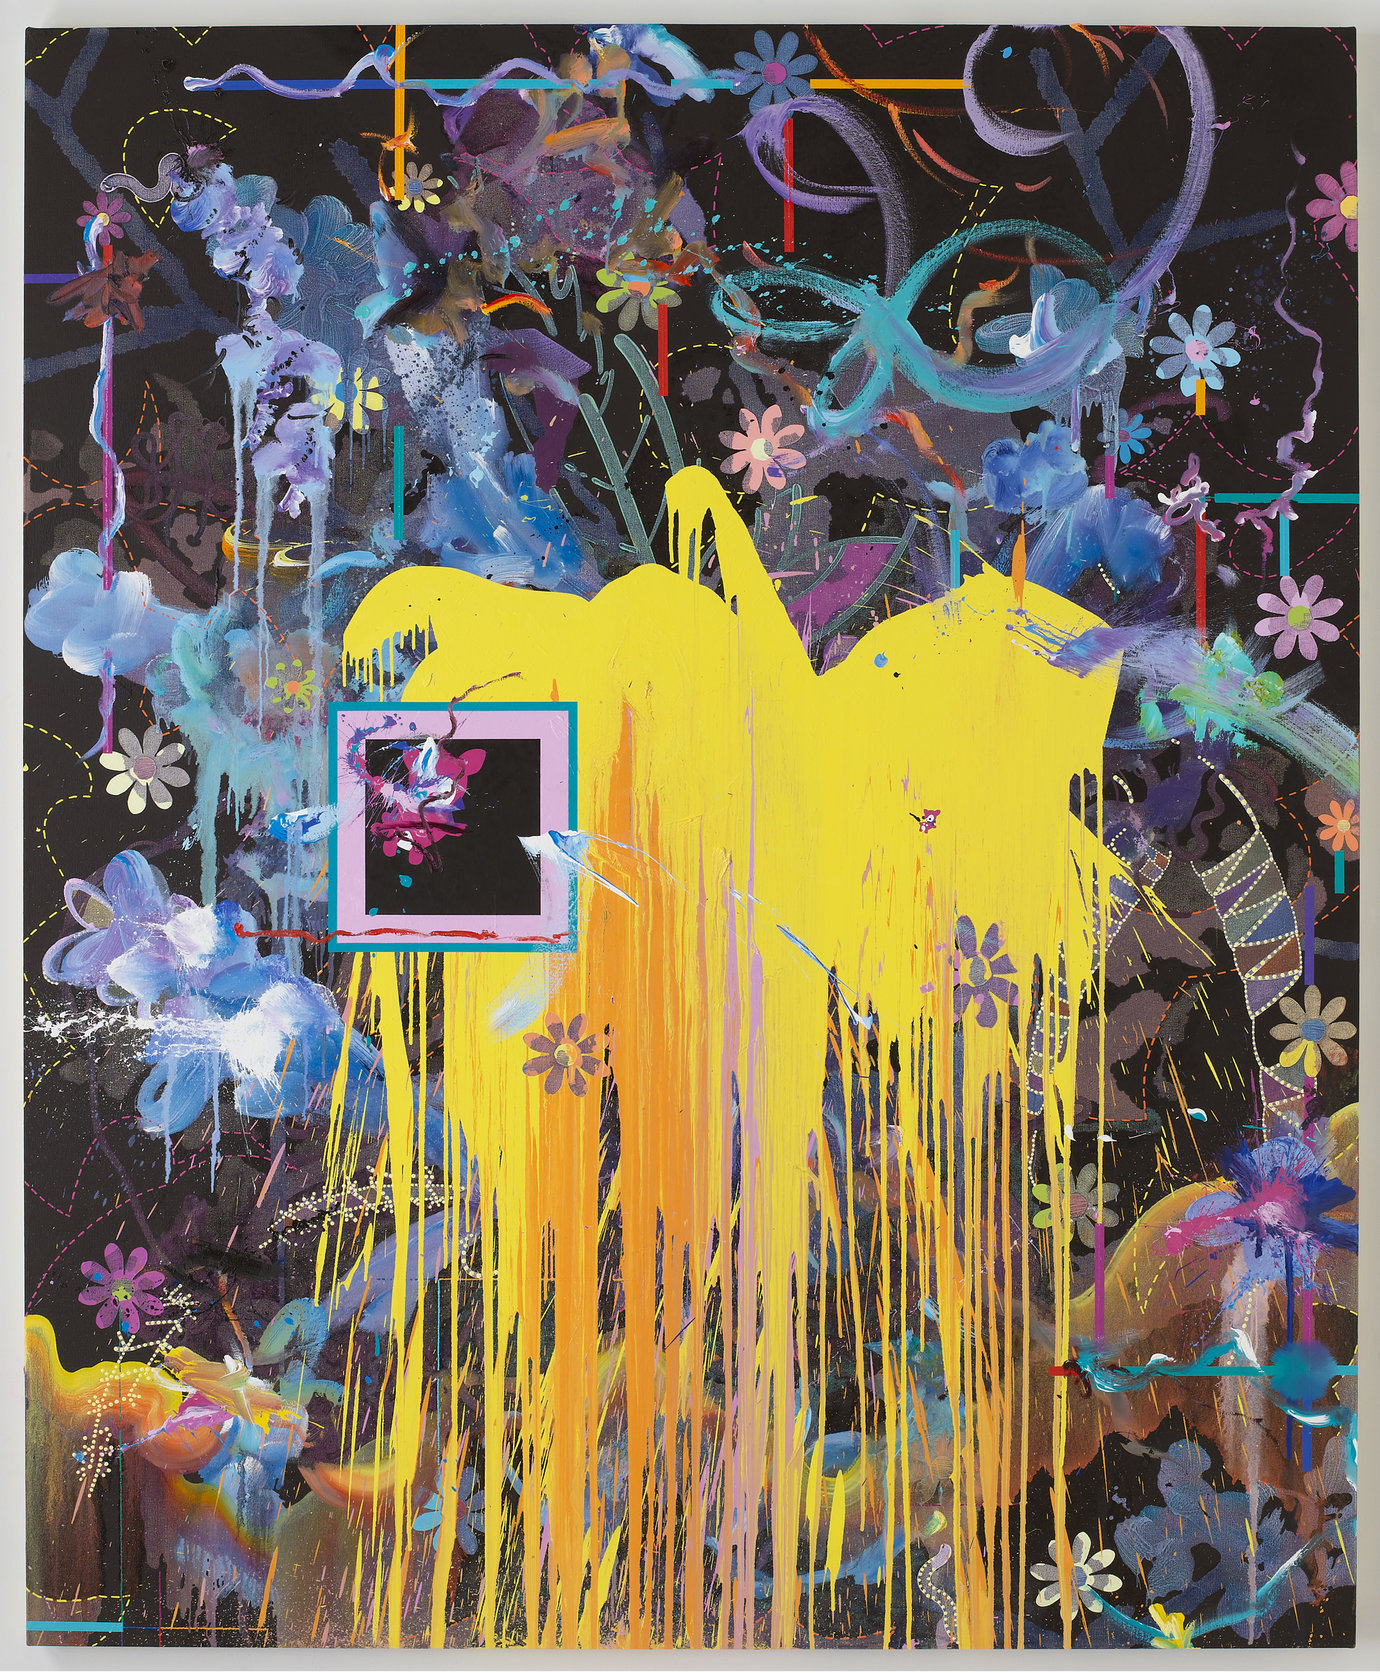 ", 2009. Oil and acrylic on canvas, 84"" x 69"" (213.4 cm x 175.3 cm)."